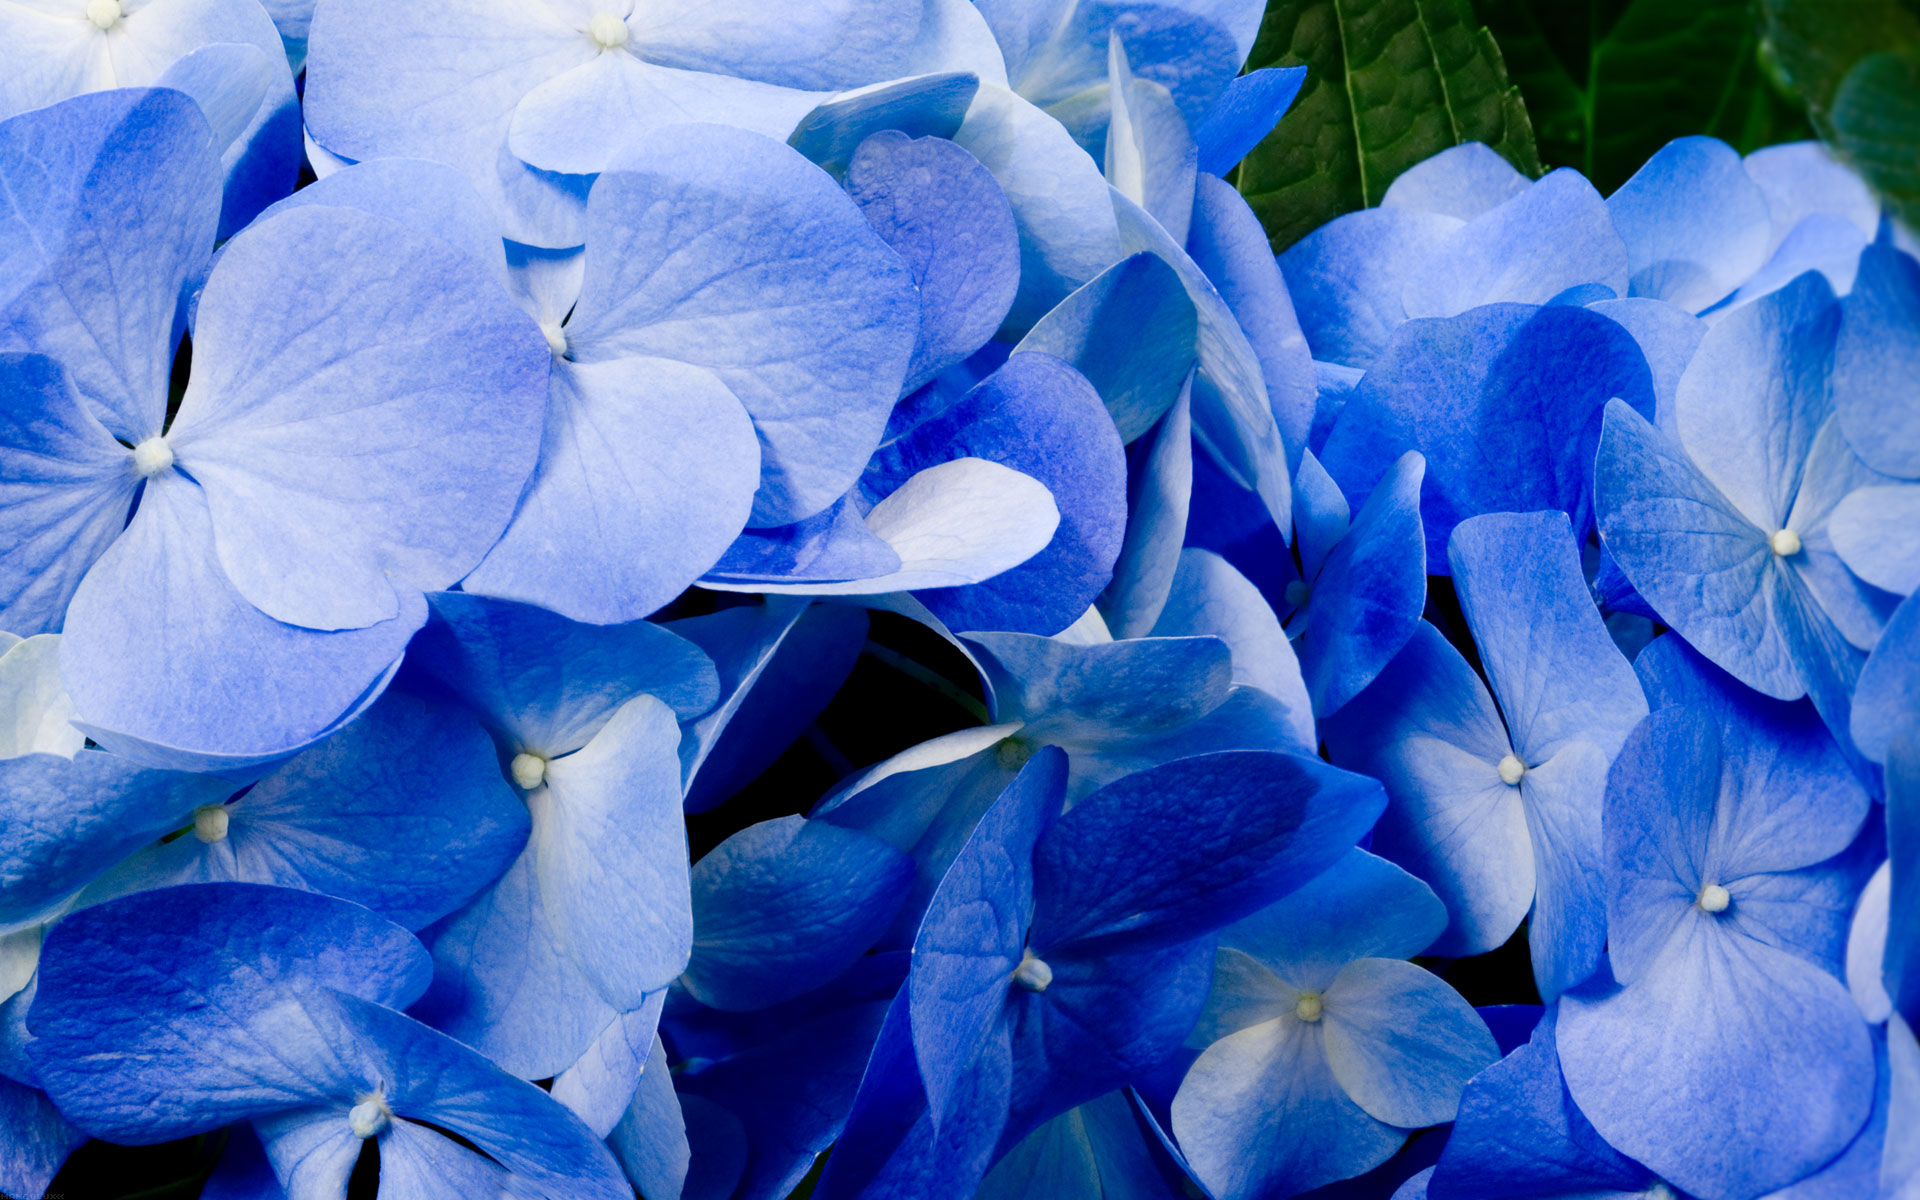 Blue flower hd wallpapers blue flower 4k izmirmasajfo Image collections